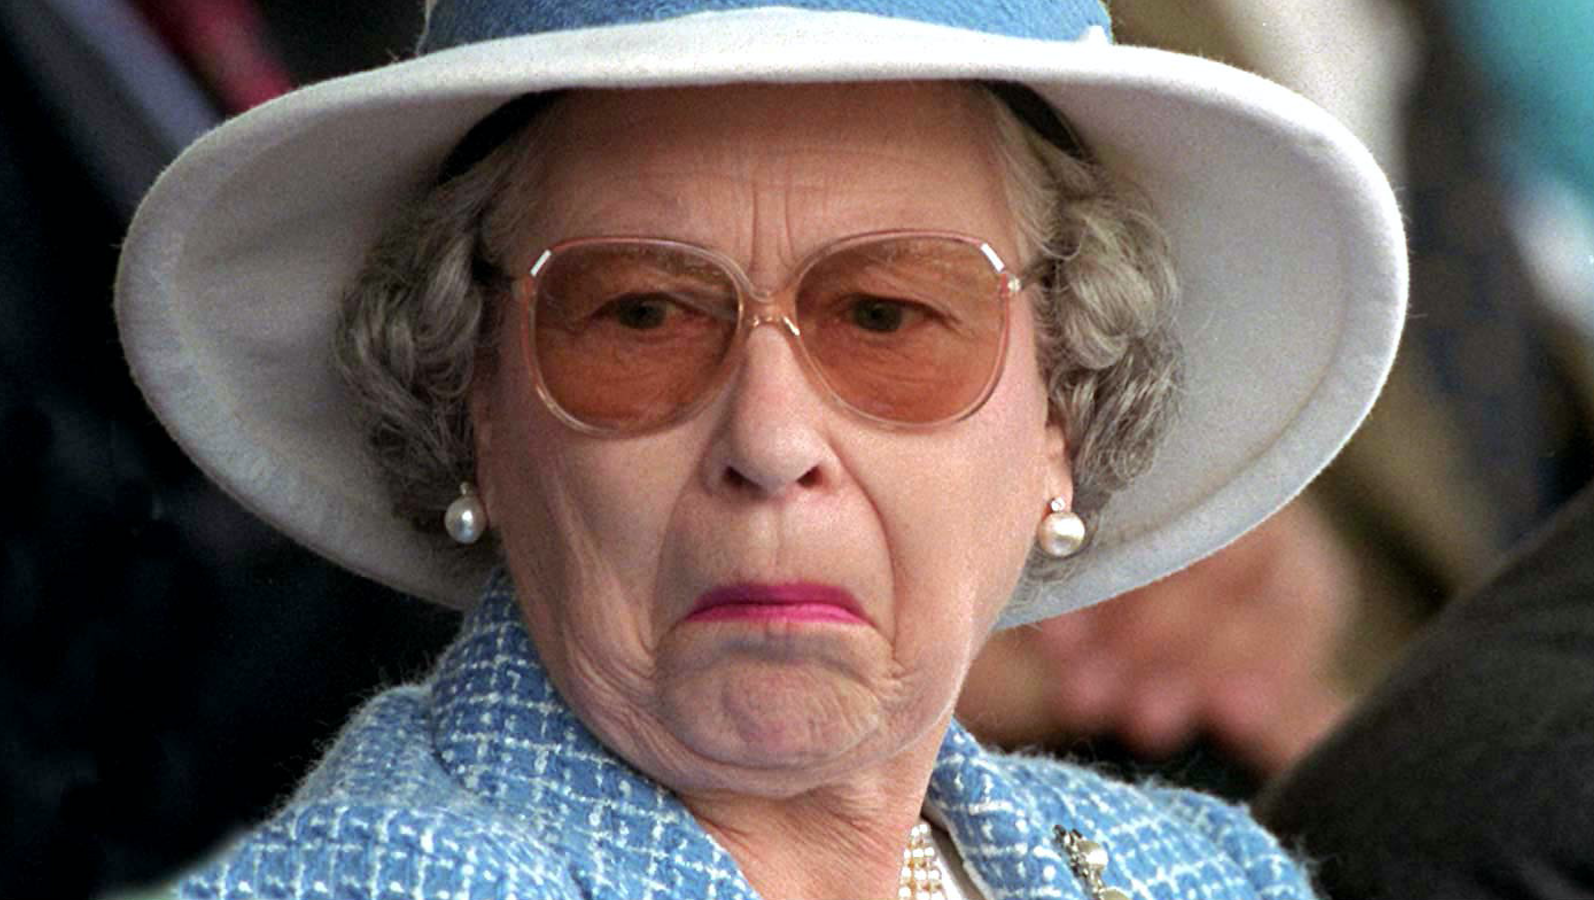 Queen-Elizabeth-Unamused-Face-White-Hat-Glasses